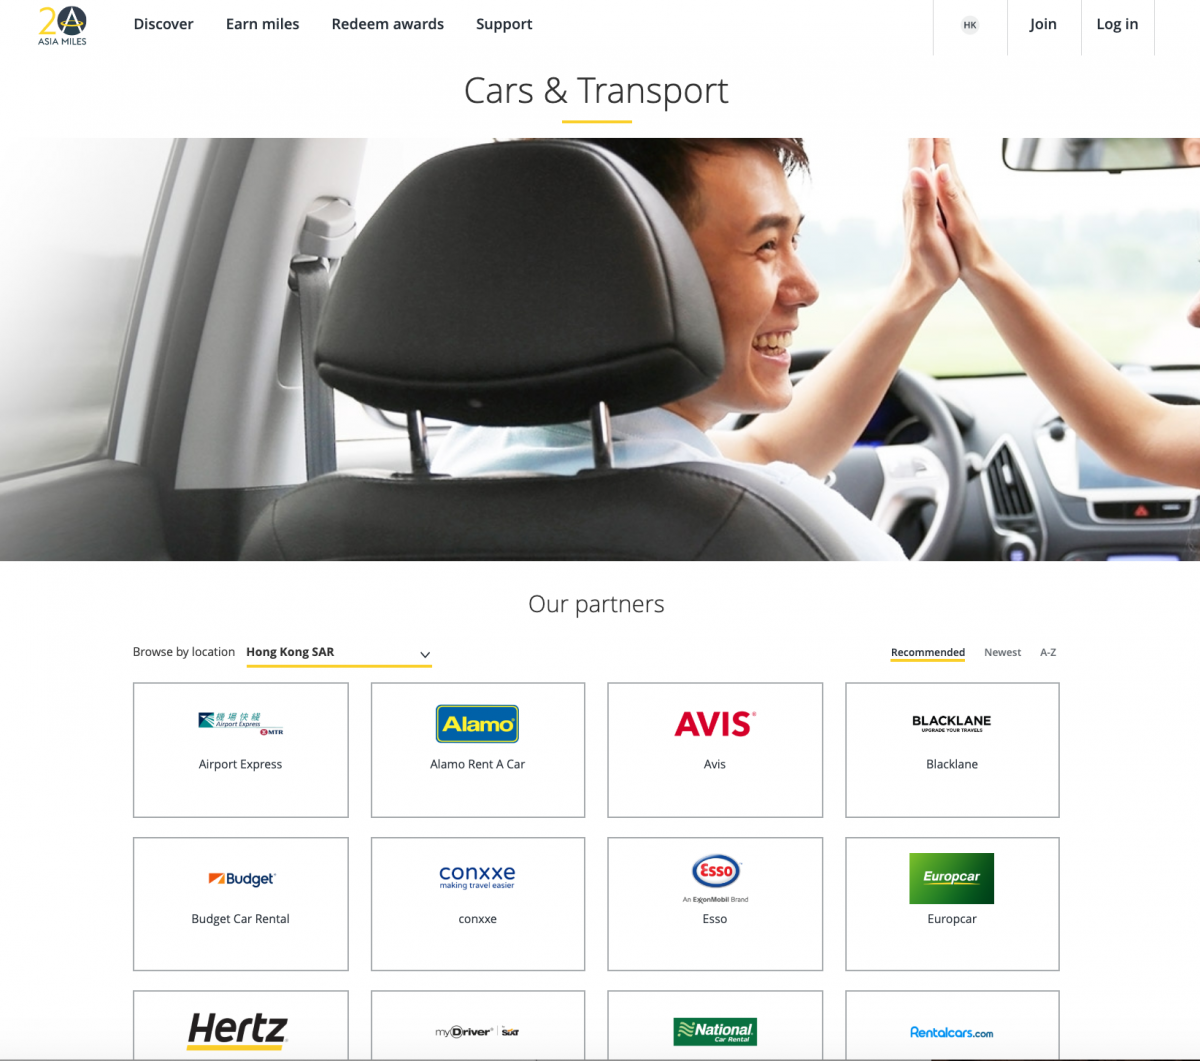 Partnering car rentals for Asia Miles